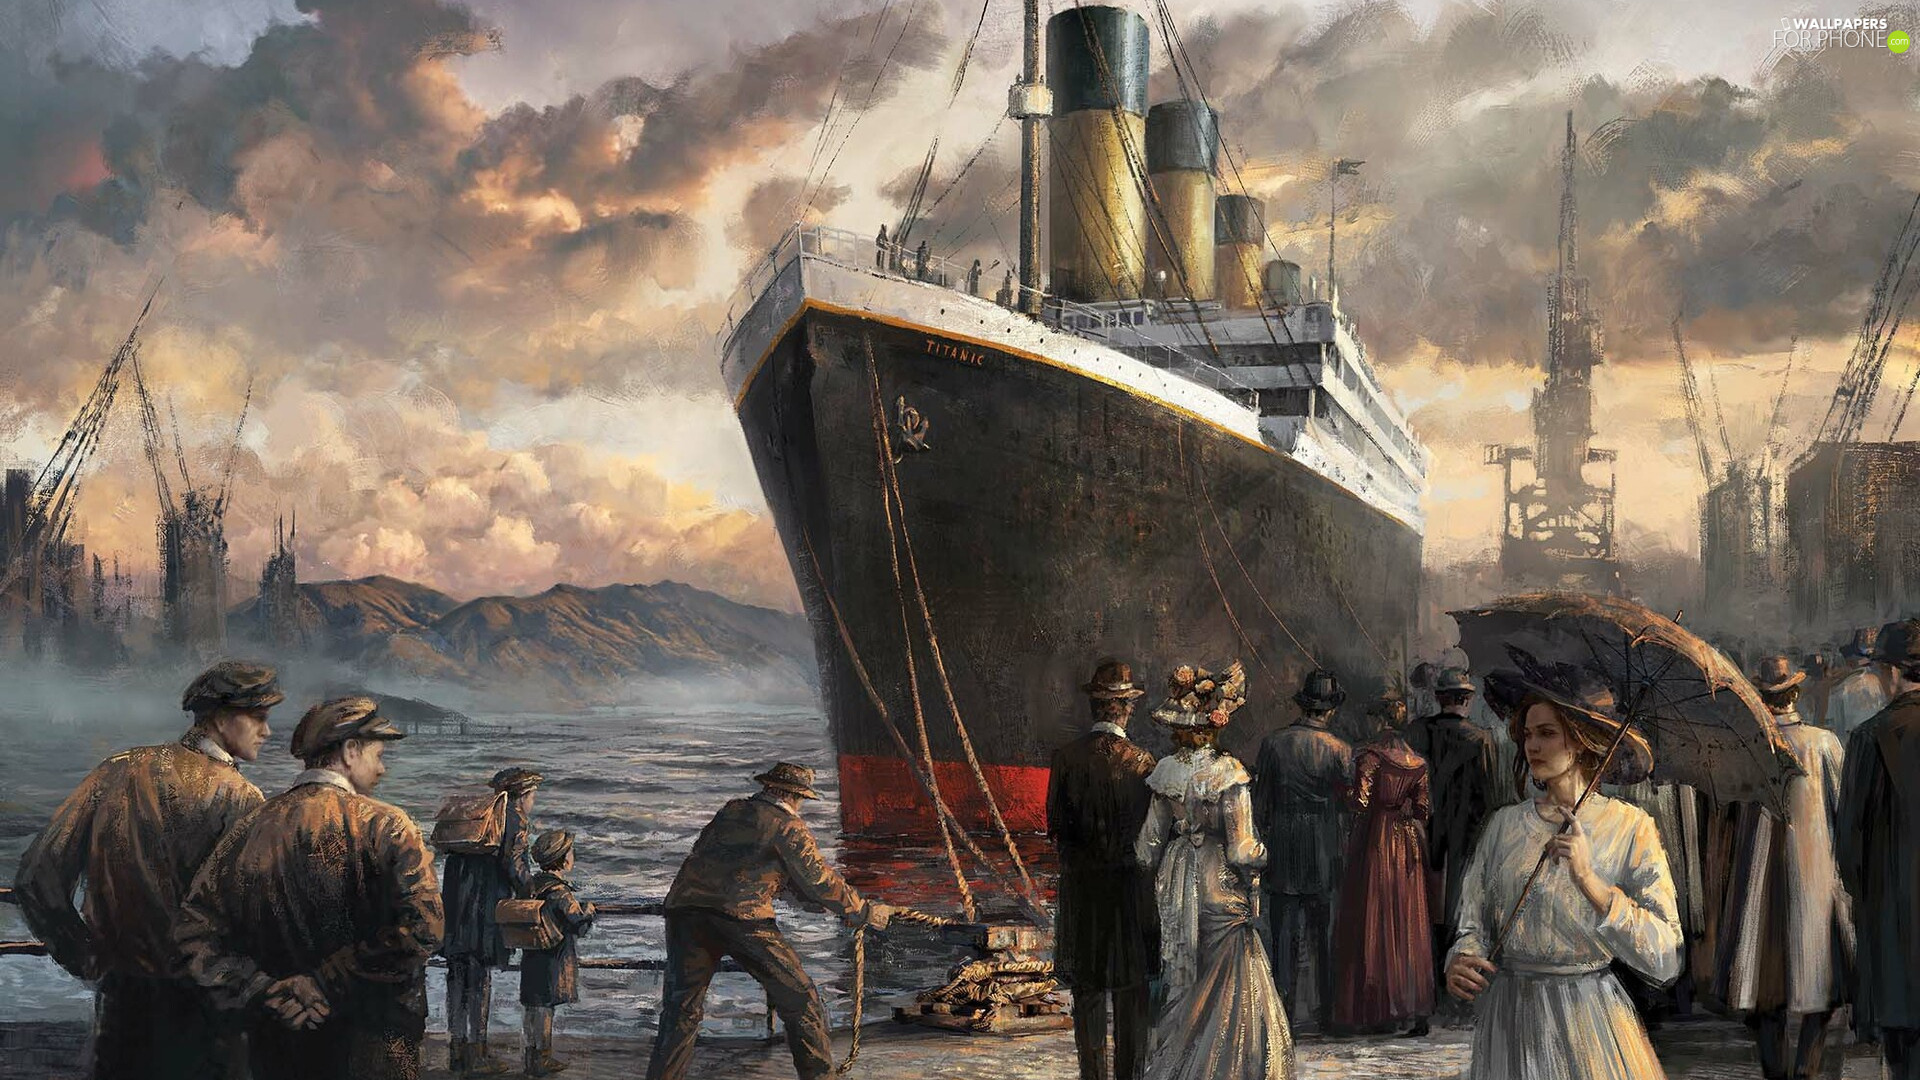 People, port, Ship, Titanic, graphics